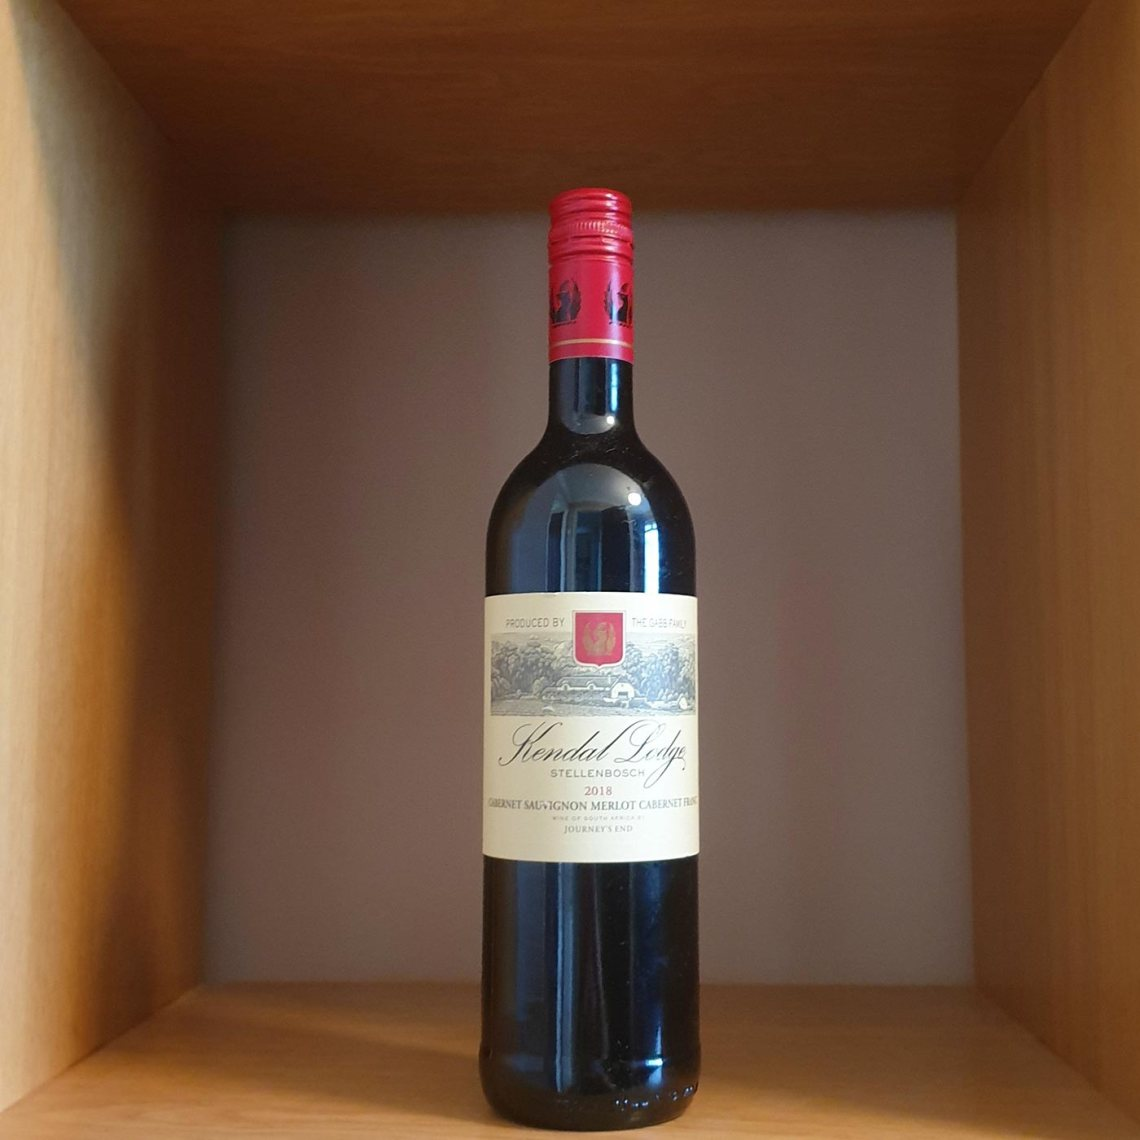 Bottle of Kendal Lodge red wine sitting in the middle of a wooden shelf.